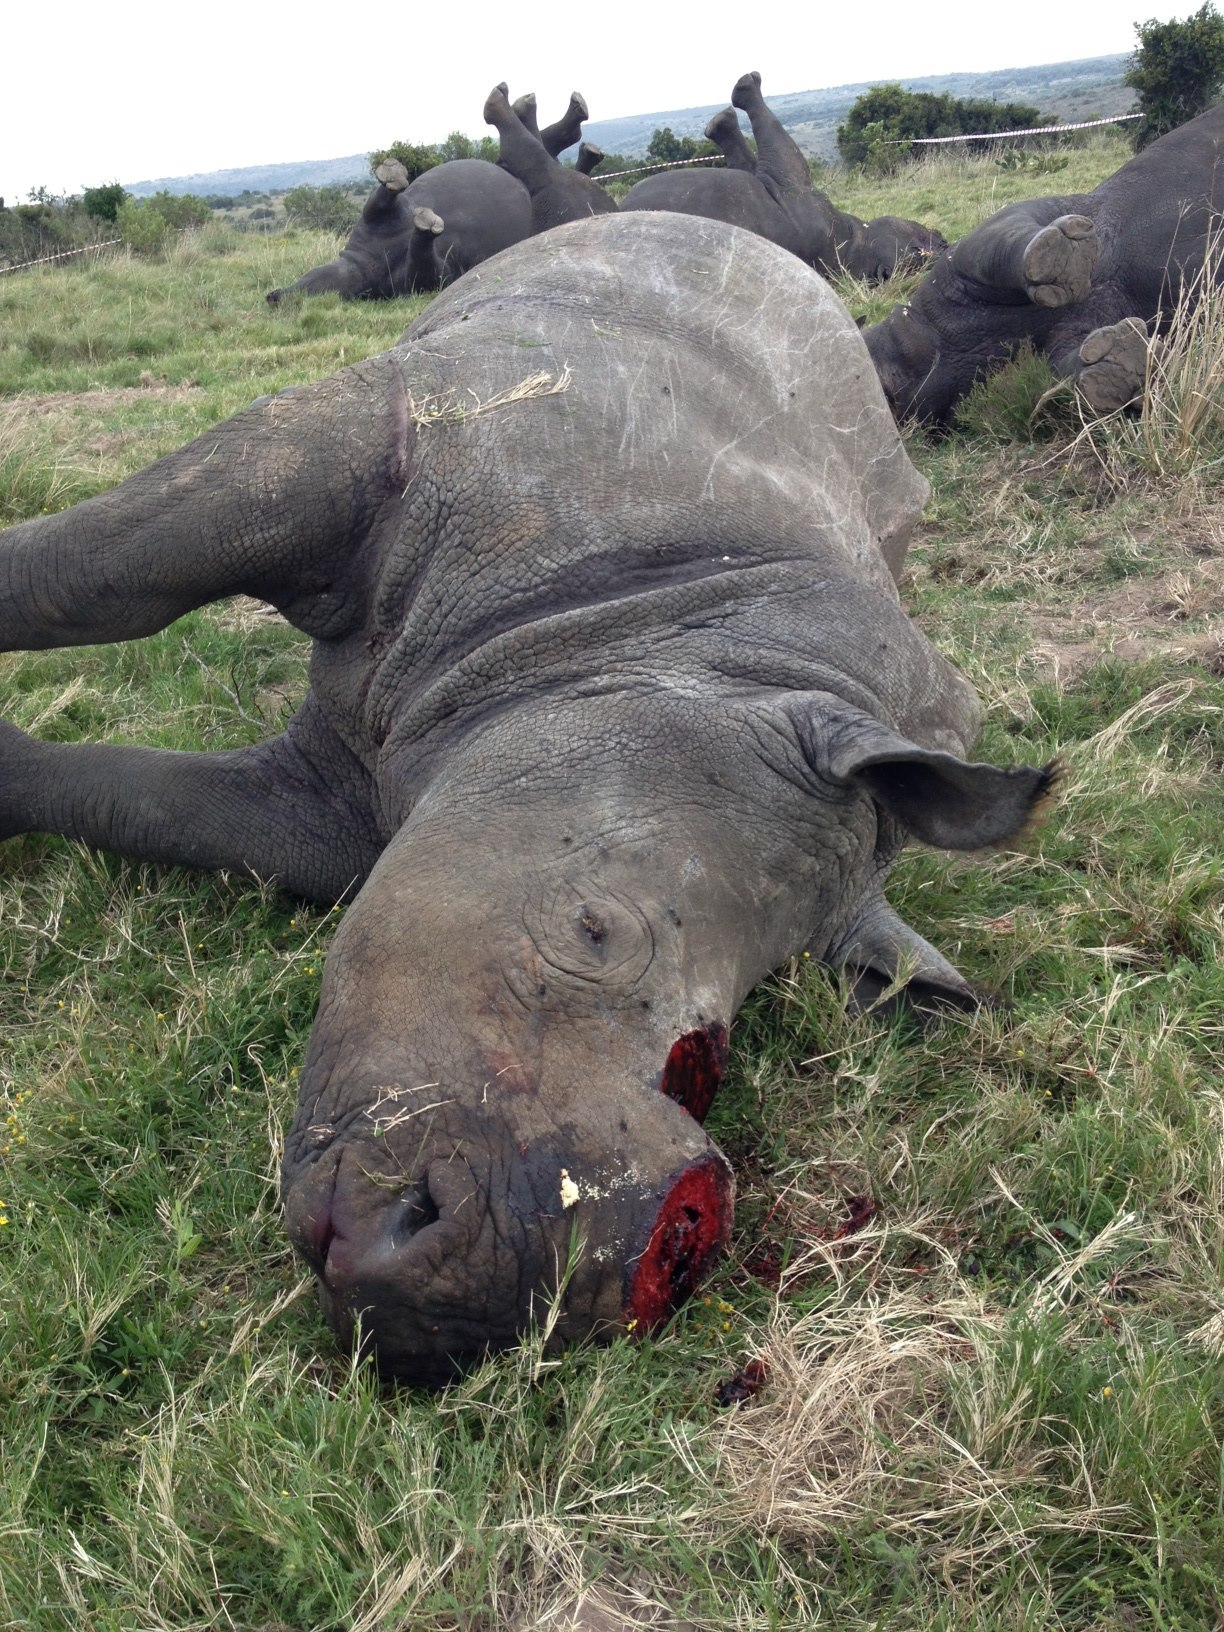 Four rhinos were tranquilized, dehorned and killed by poachers at South Africa's Lalibela Game Reserve